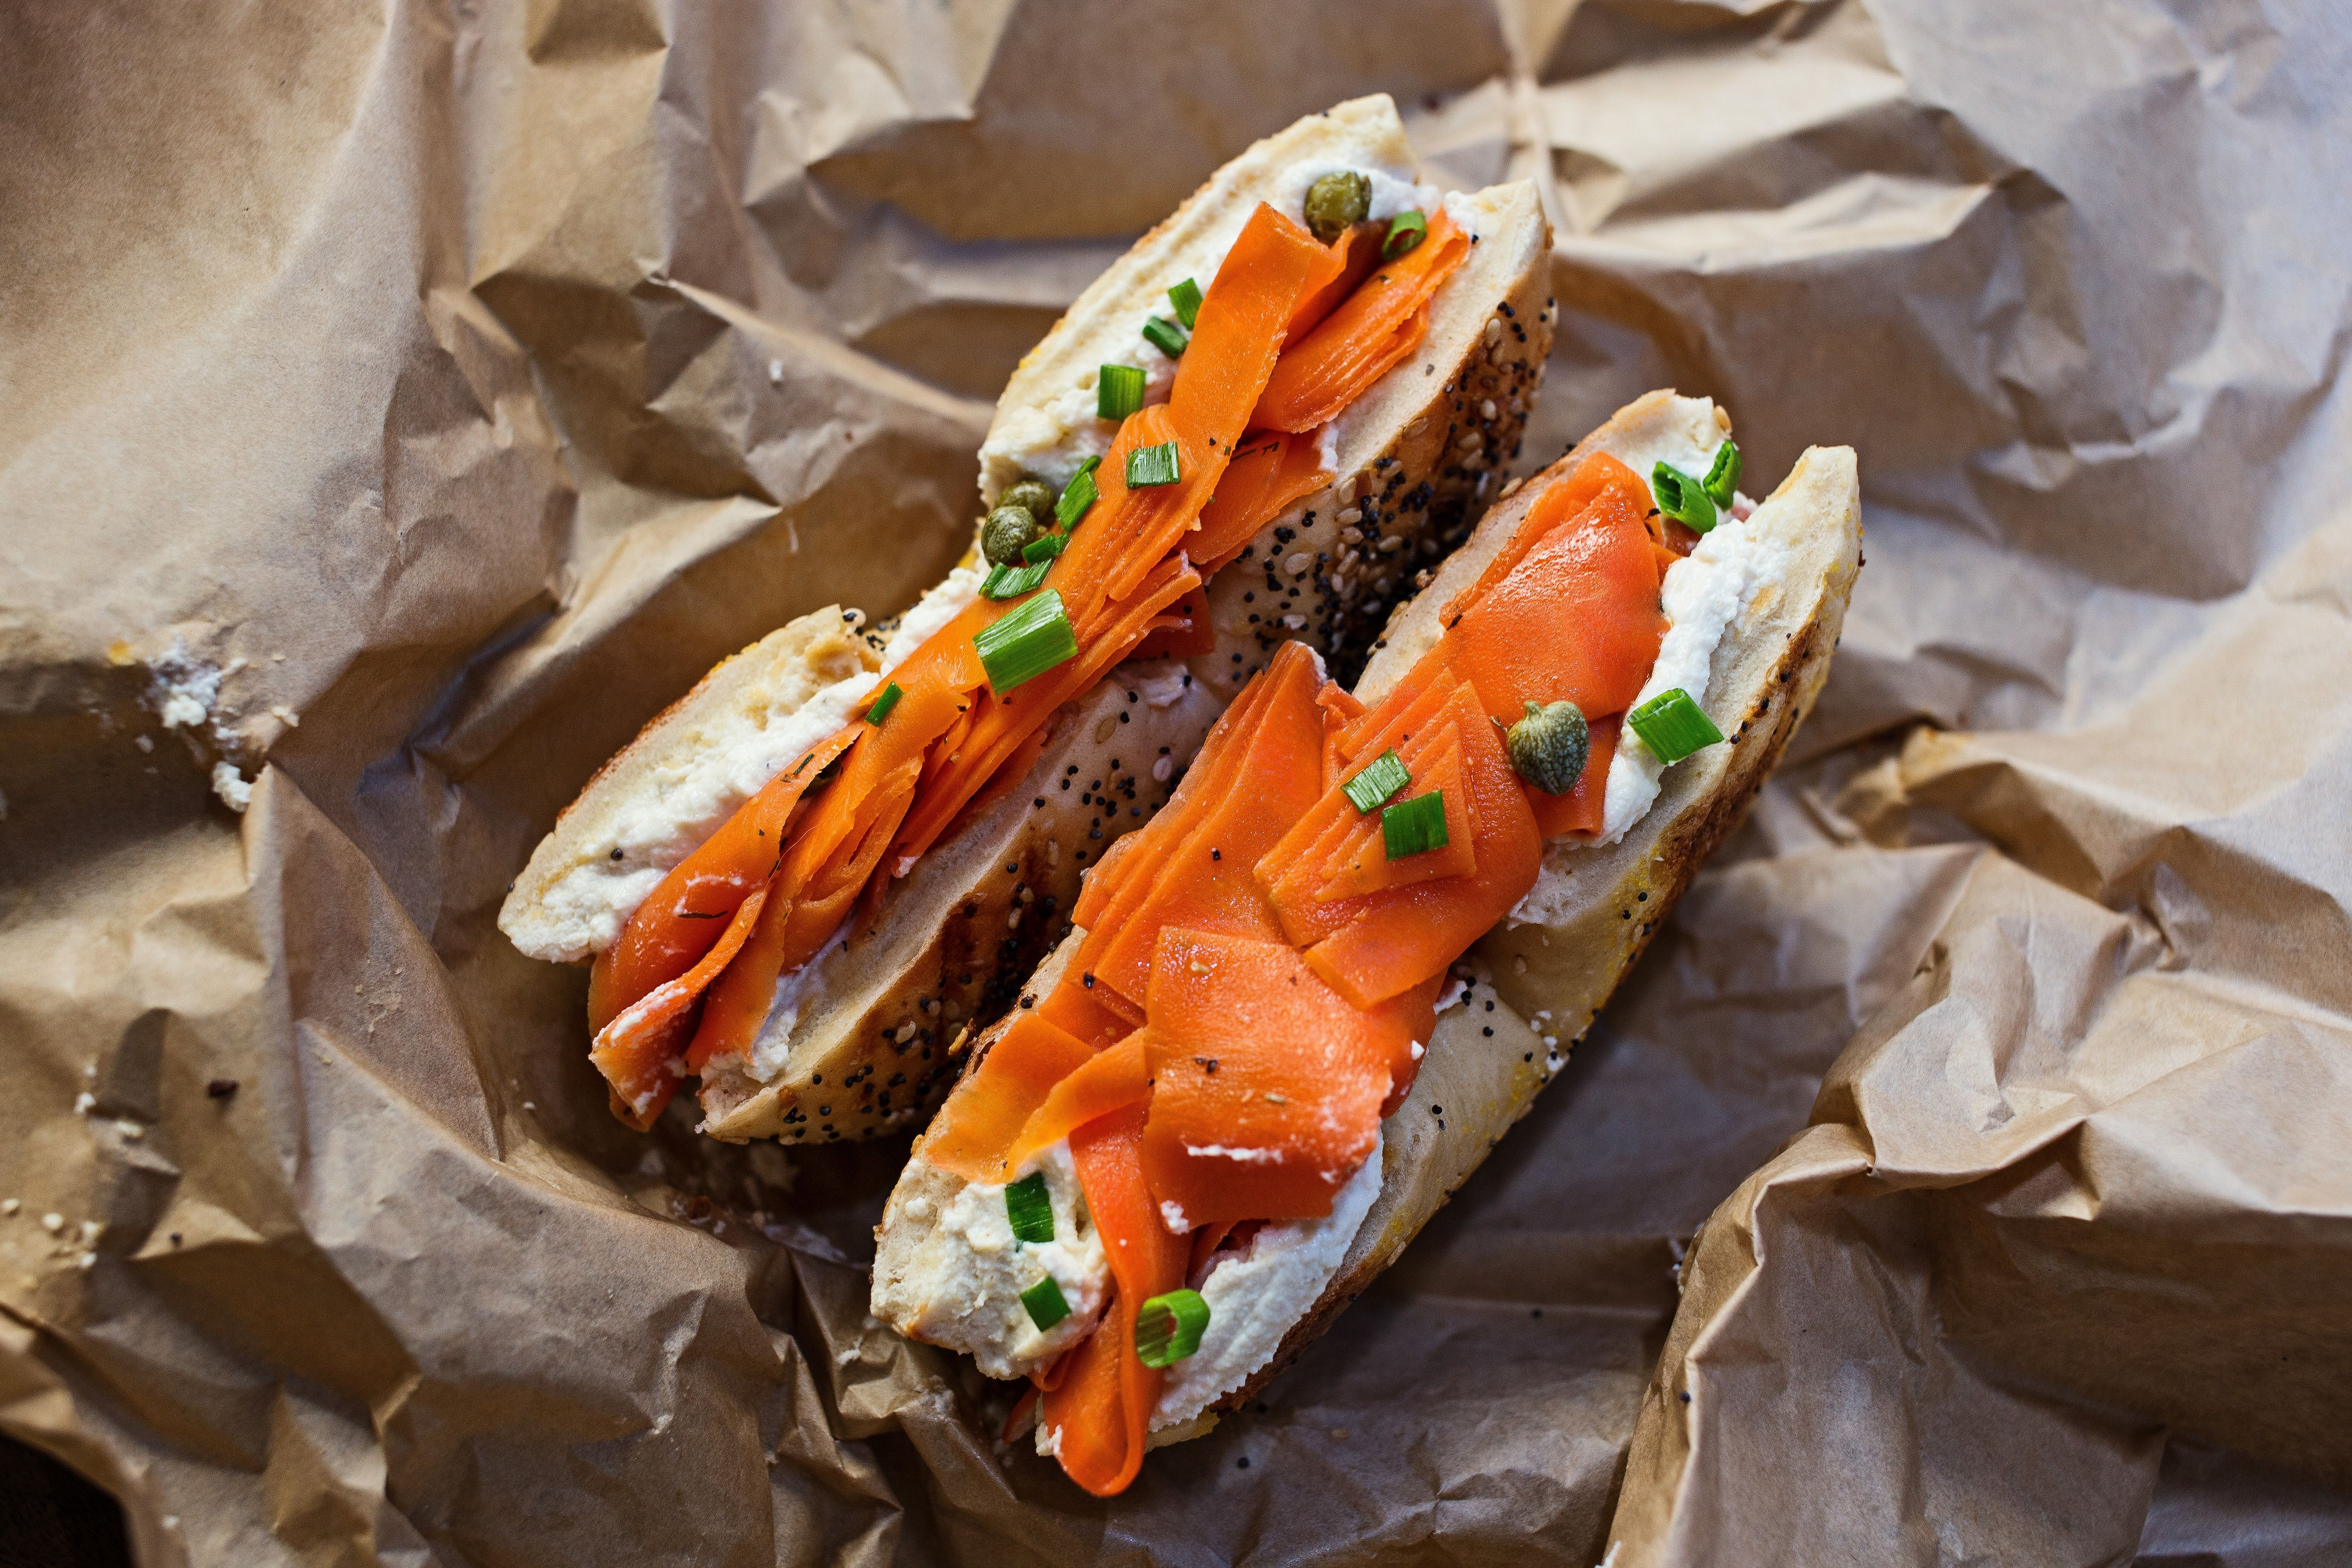 The Edith: A Baz Bagels bagel is topped with house-made cashew cream cheese, carrot lox, capers and chives.